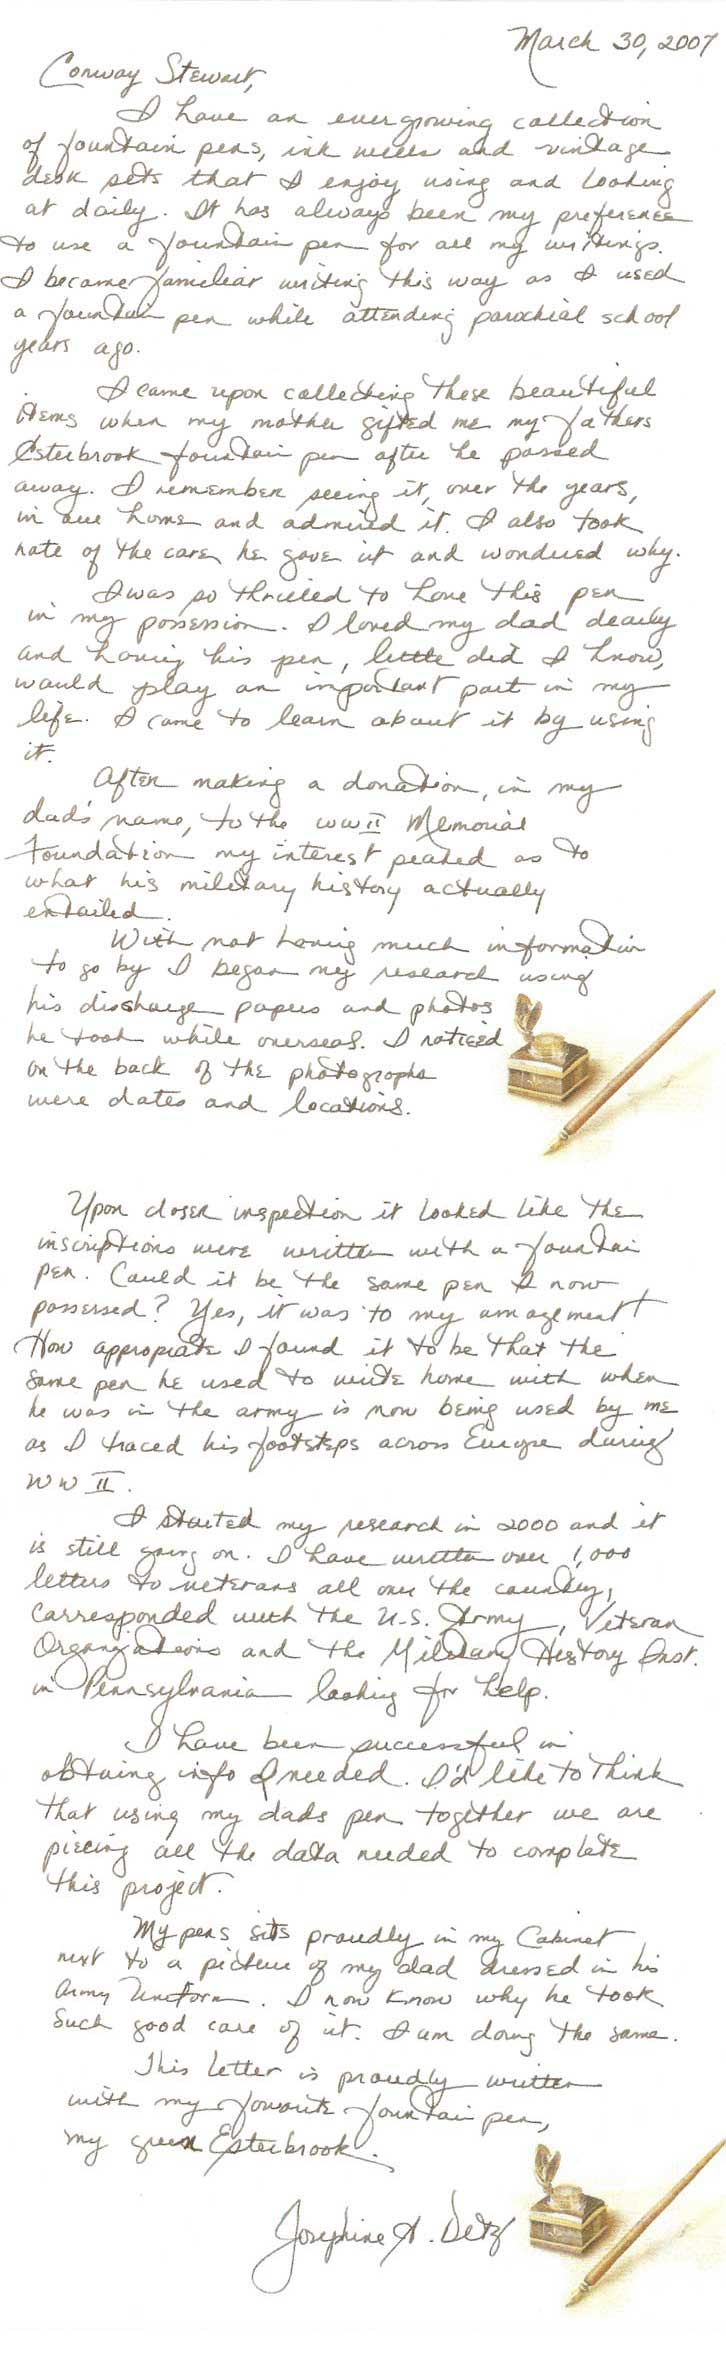 letter of apology to judge in persuading for a second chance I sincerely believe everyone deserves a second chance and i hope you will find it wise to give ross one at sentencing ulbricht's sentencing hearing is scheduled for may 29, 2015 at 1:30pm in a.